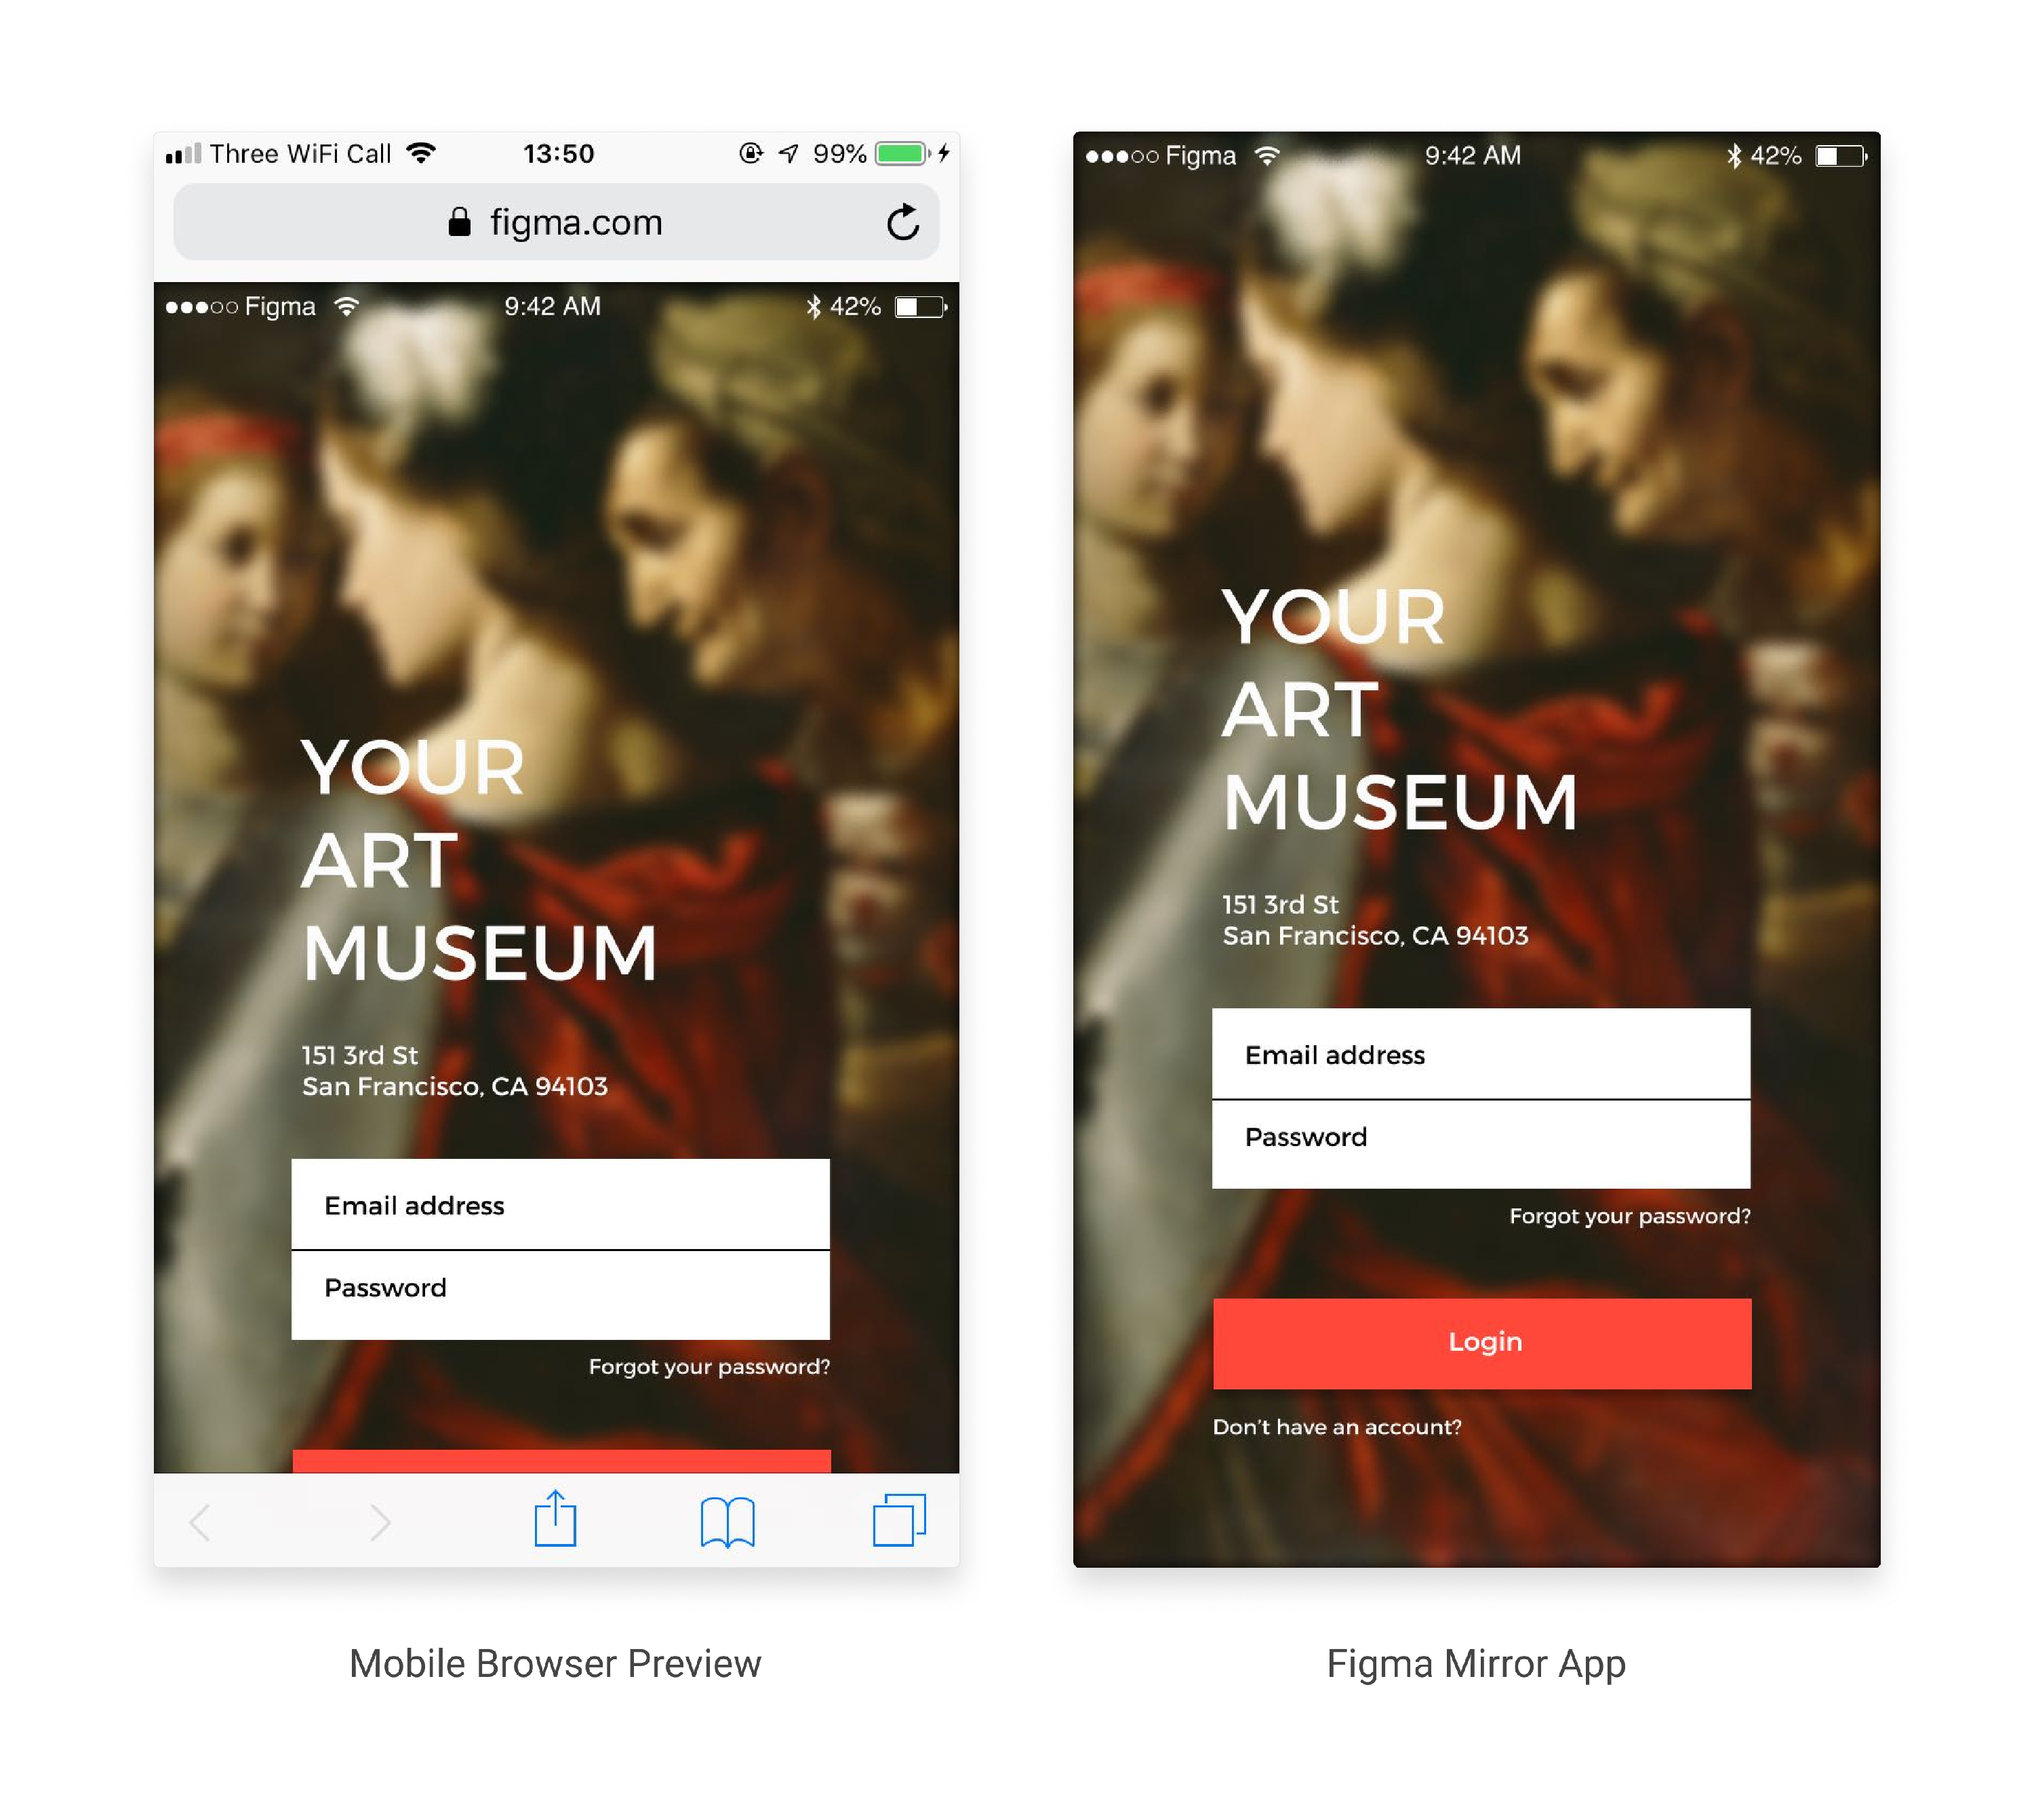 Image comparing a mobile browser preview and the preview in the Figma Mirror app